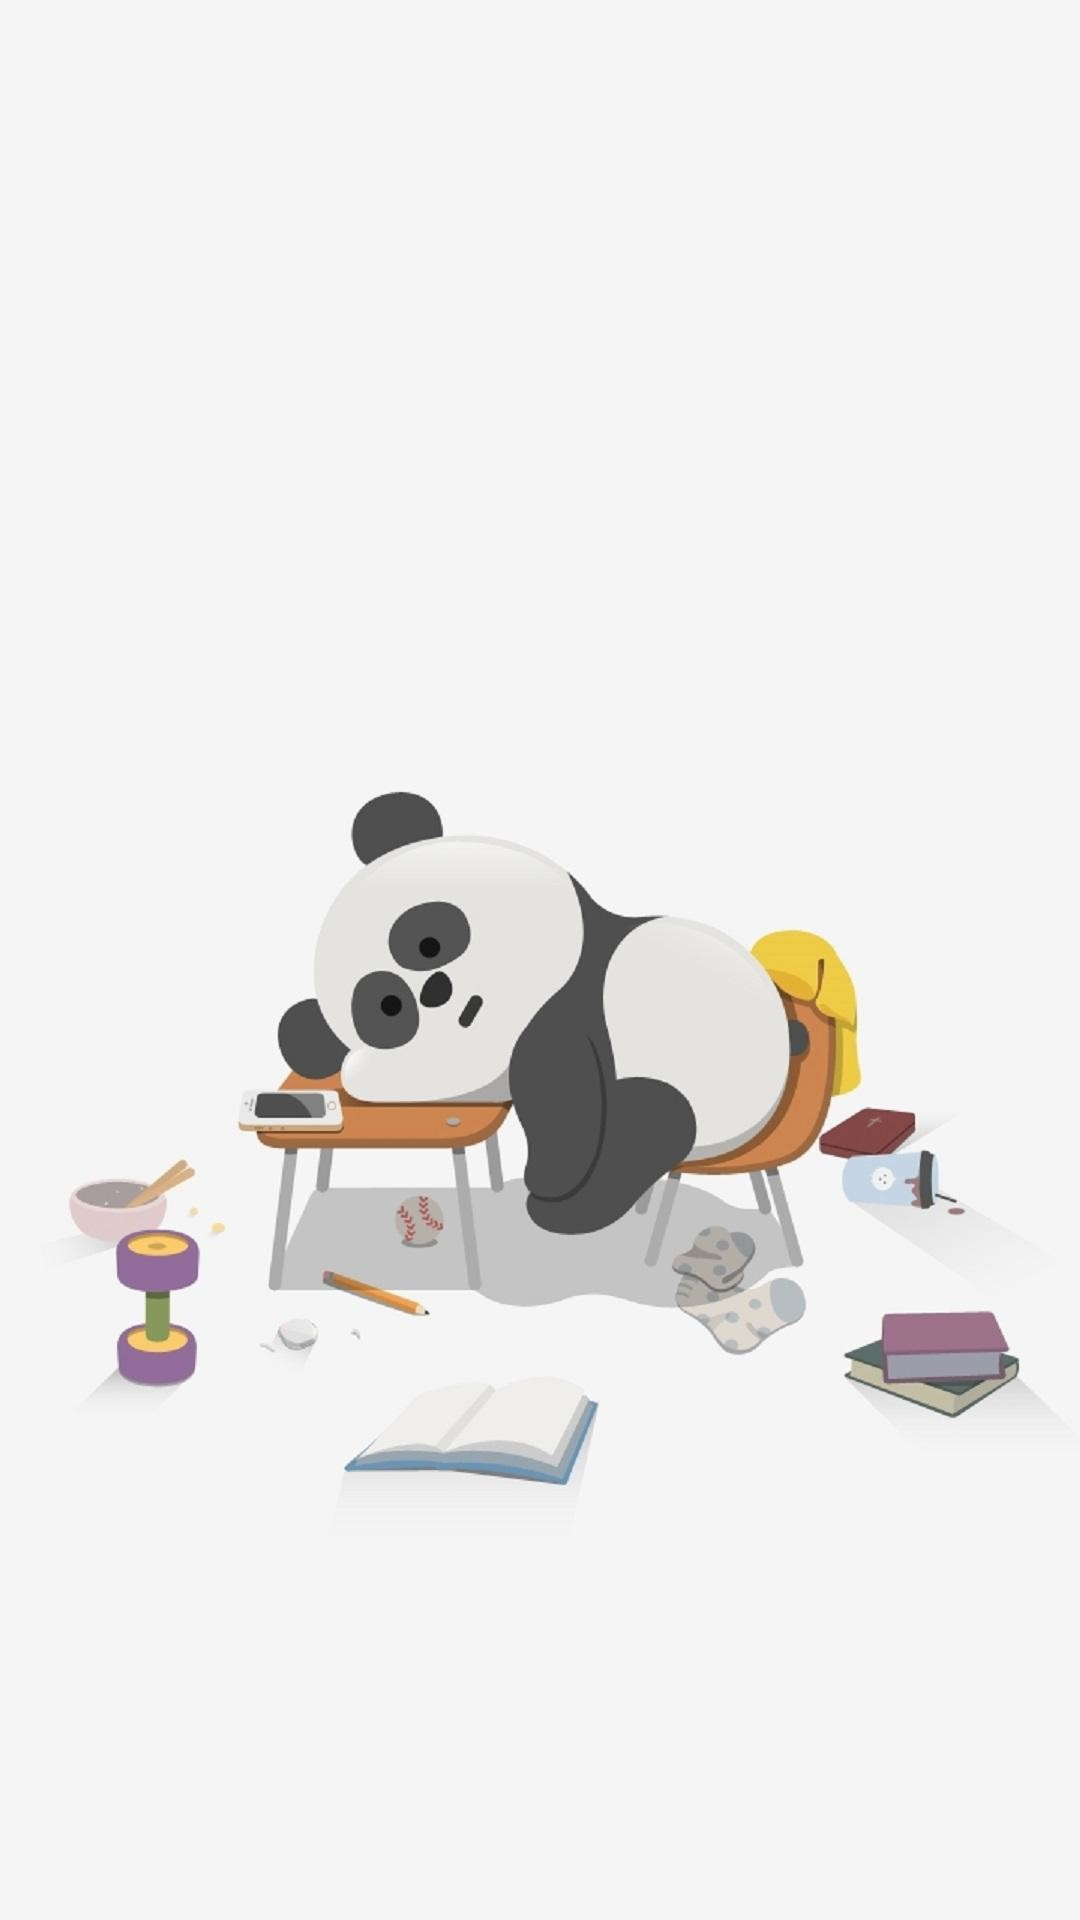 1080x1920 Cute-Sleepy-Panda-Cute-Animal-iPhone-Tap-to-